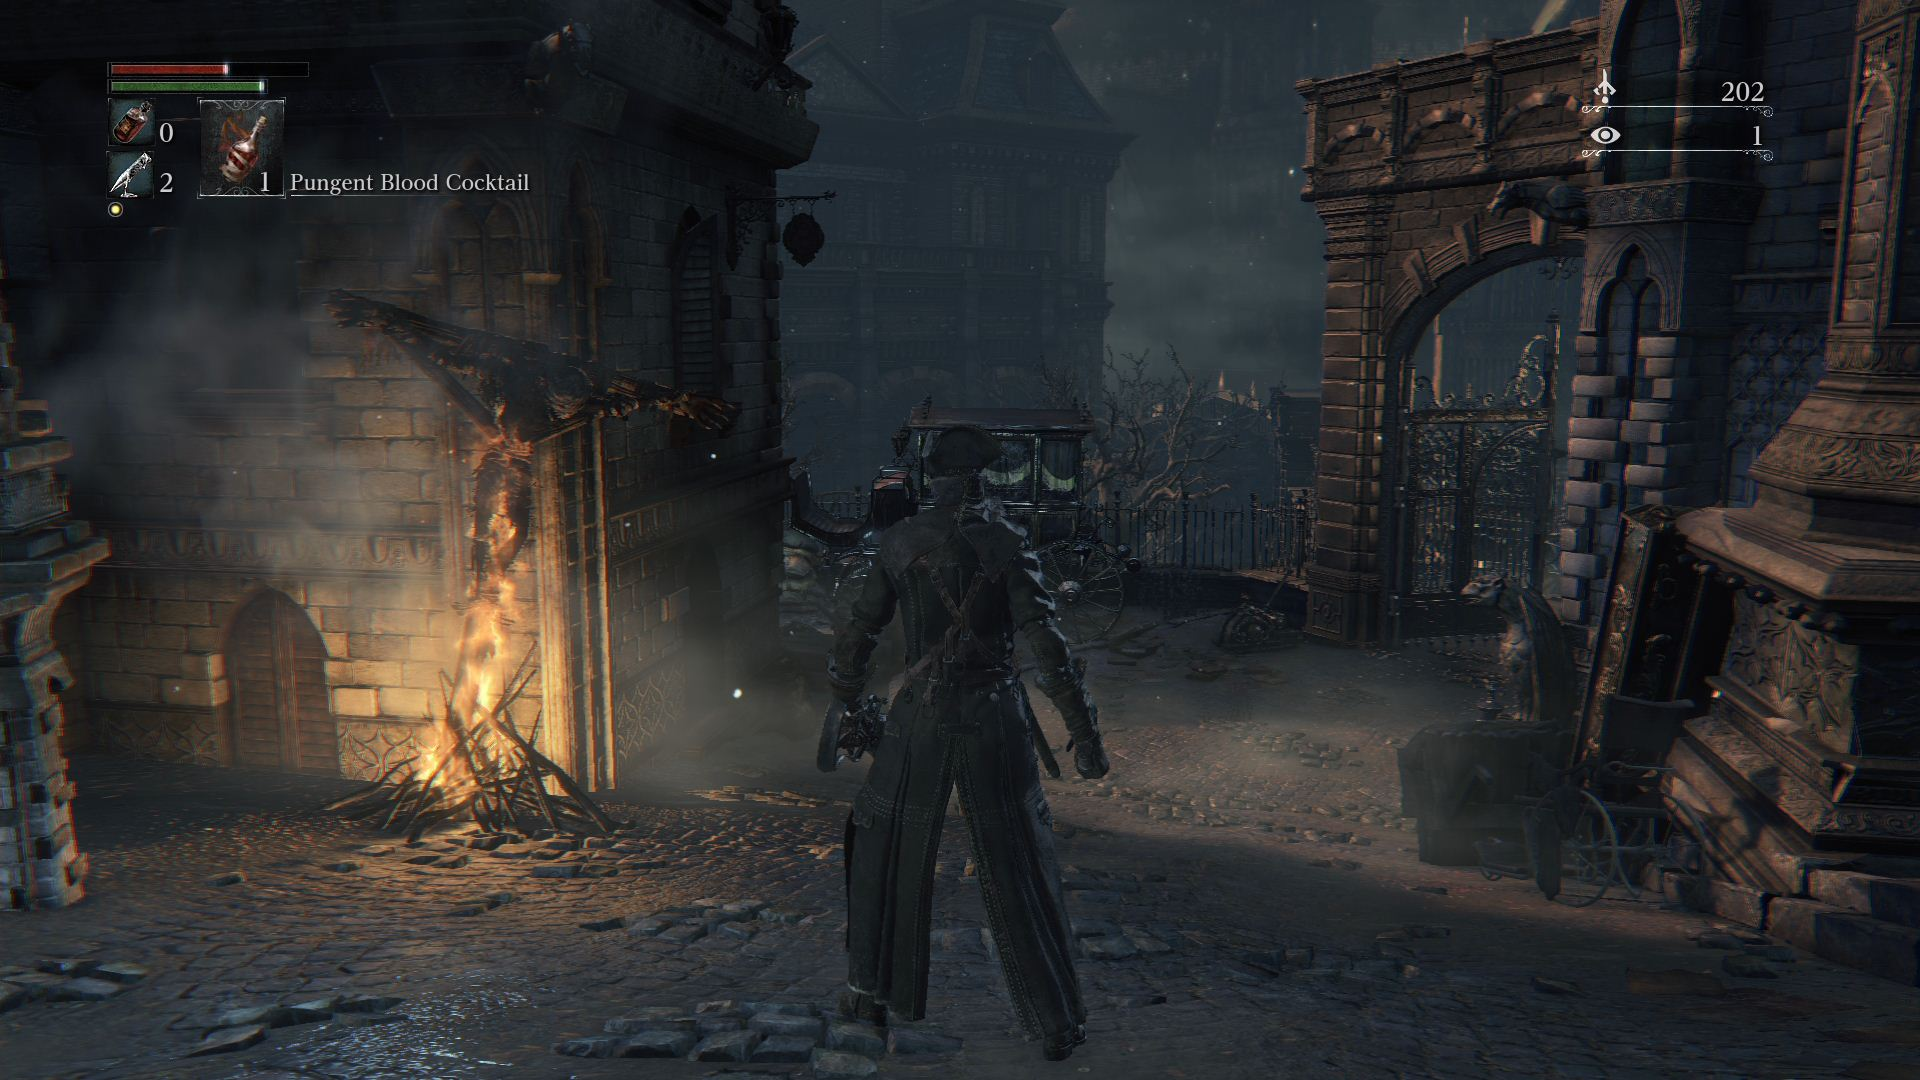 PS4 BLOODBORNE 7